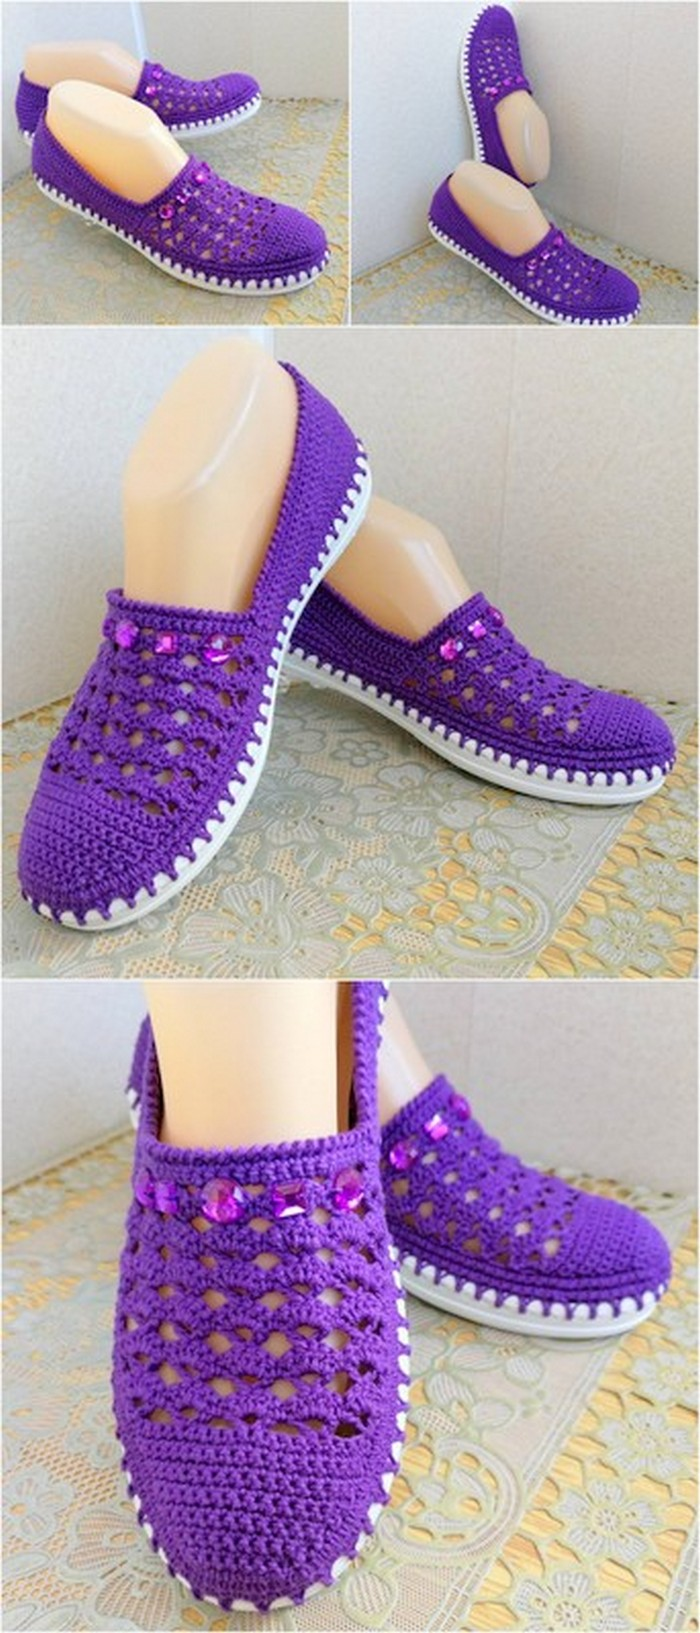 Comfortable crochet shoes design